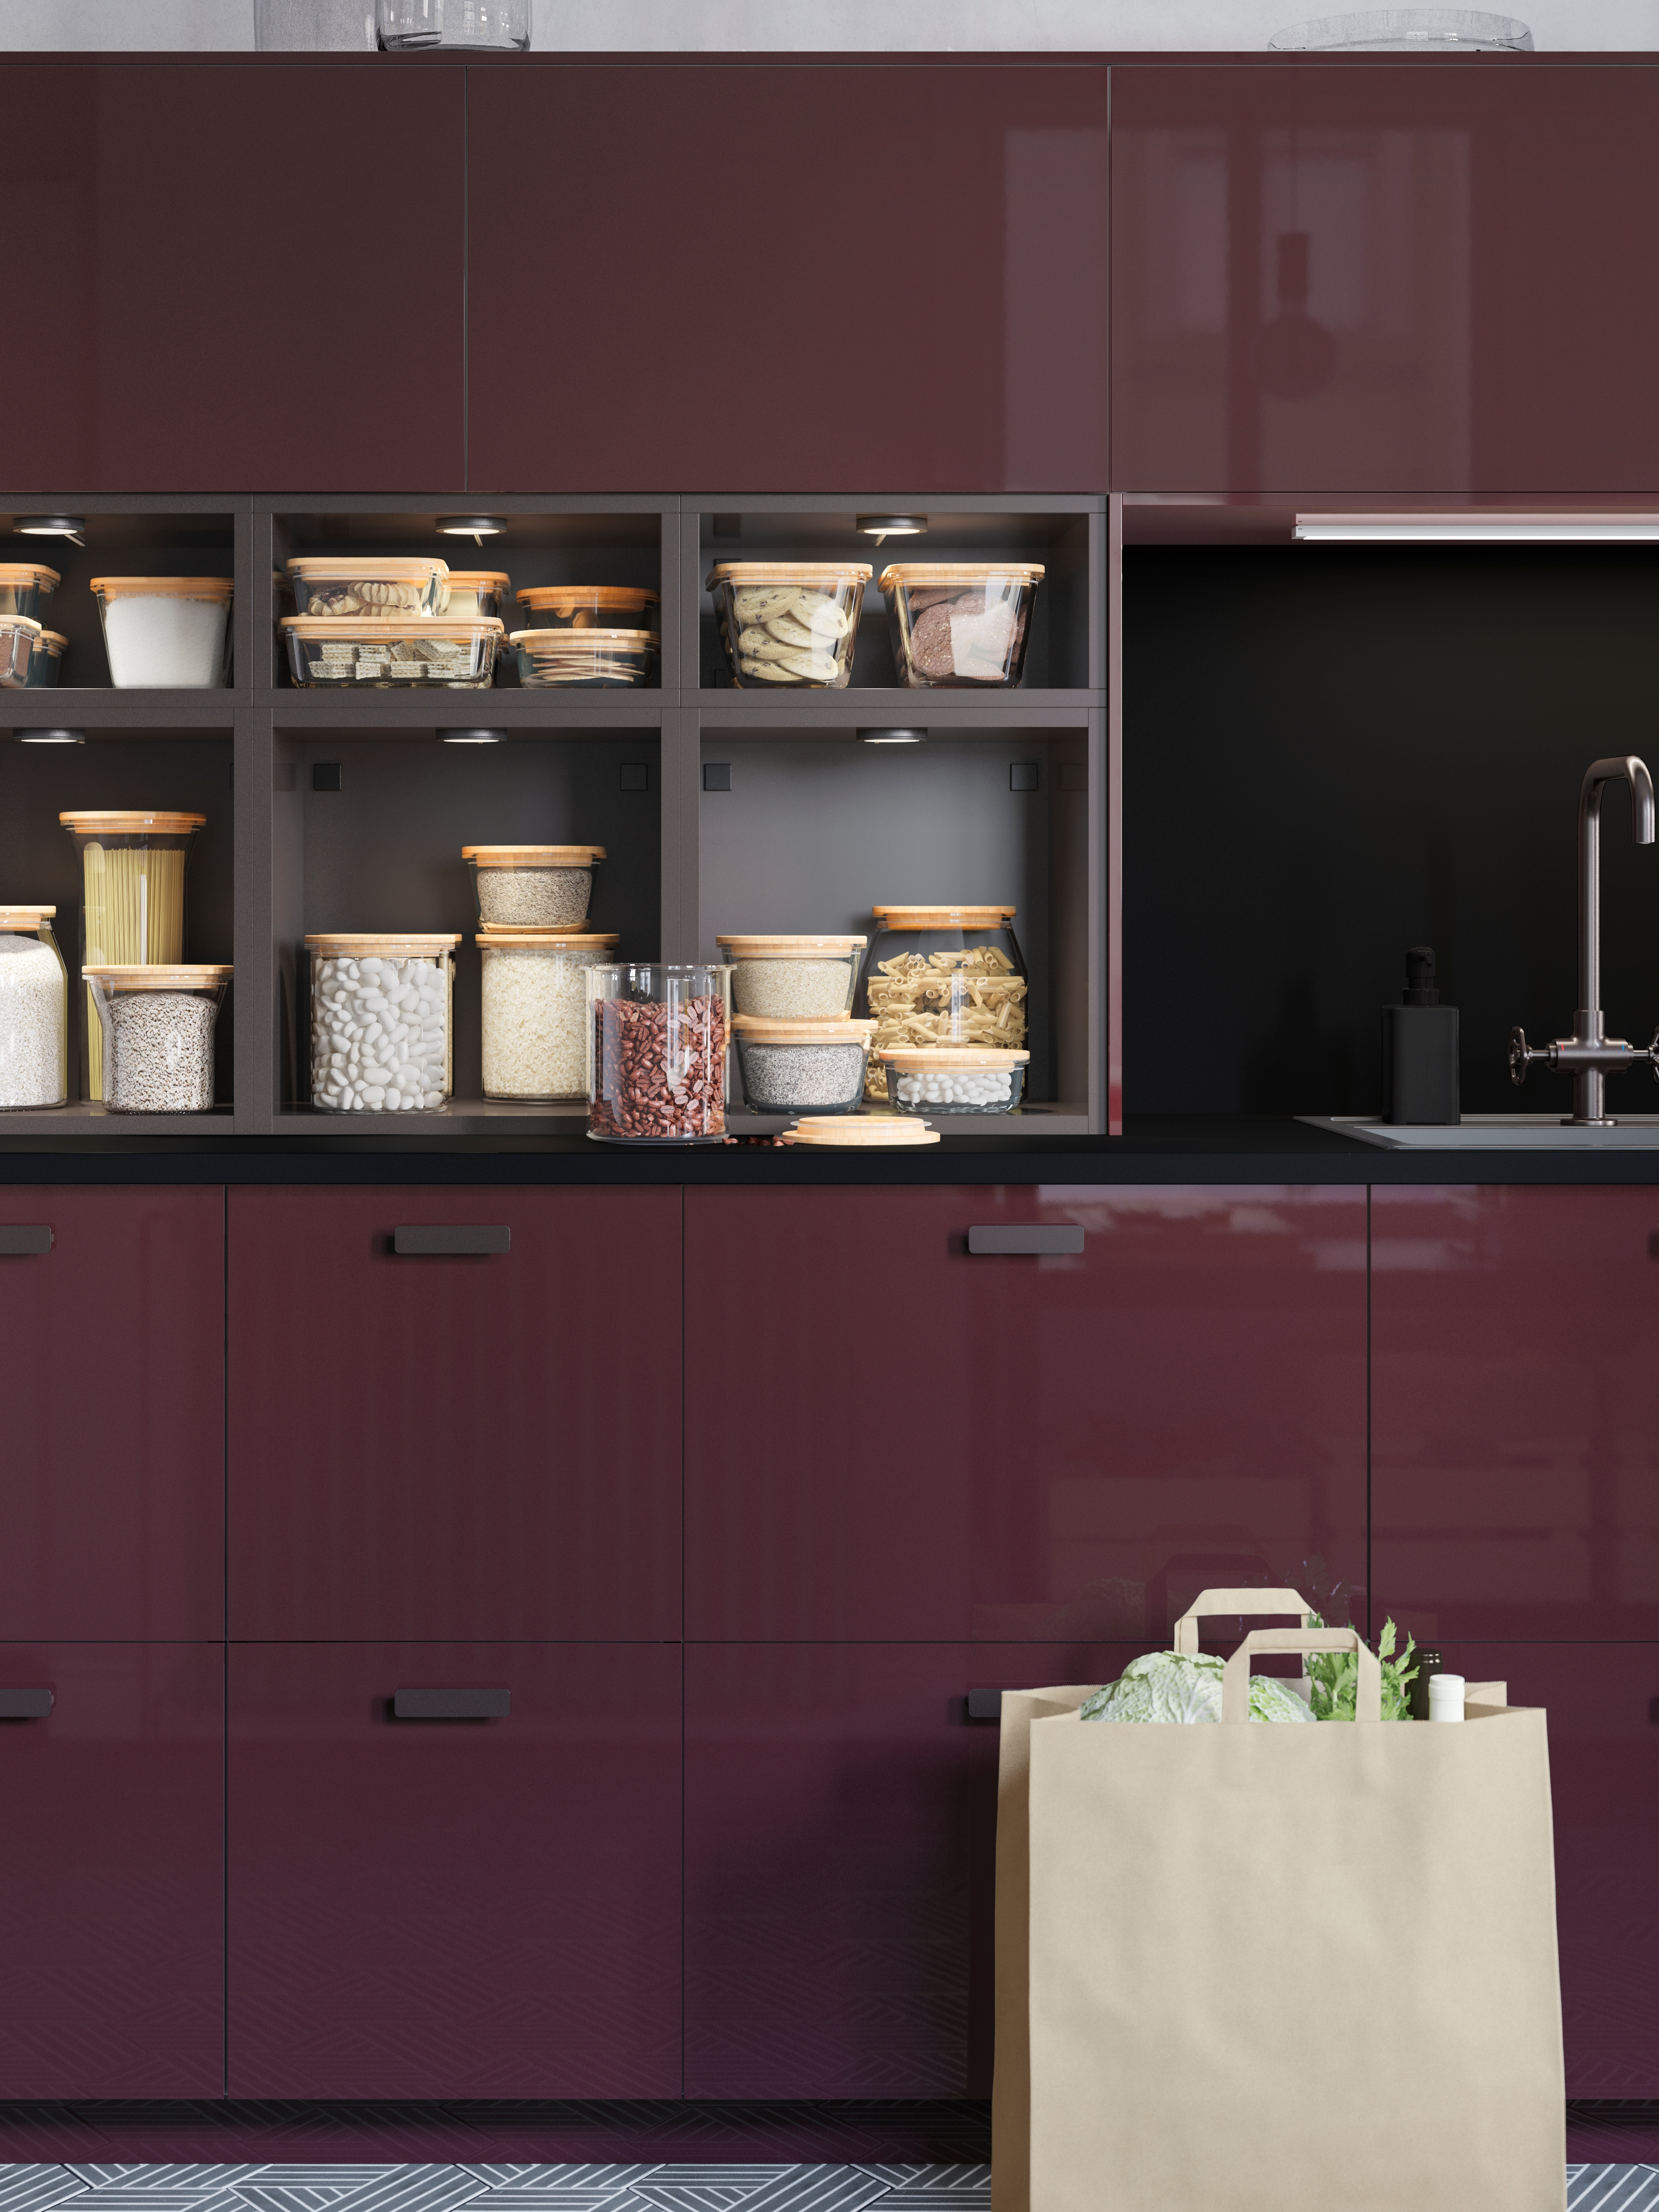 A kitchen with KALLARP high-gloss dark red-brown drawers and open cabinets in anthracite displaying food in glass jars.